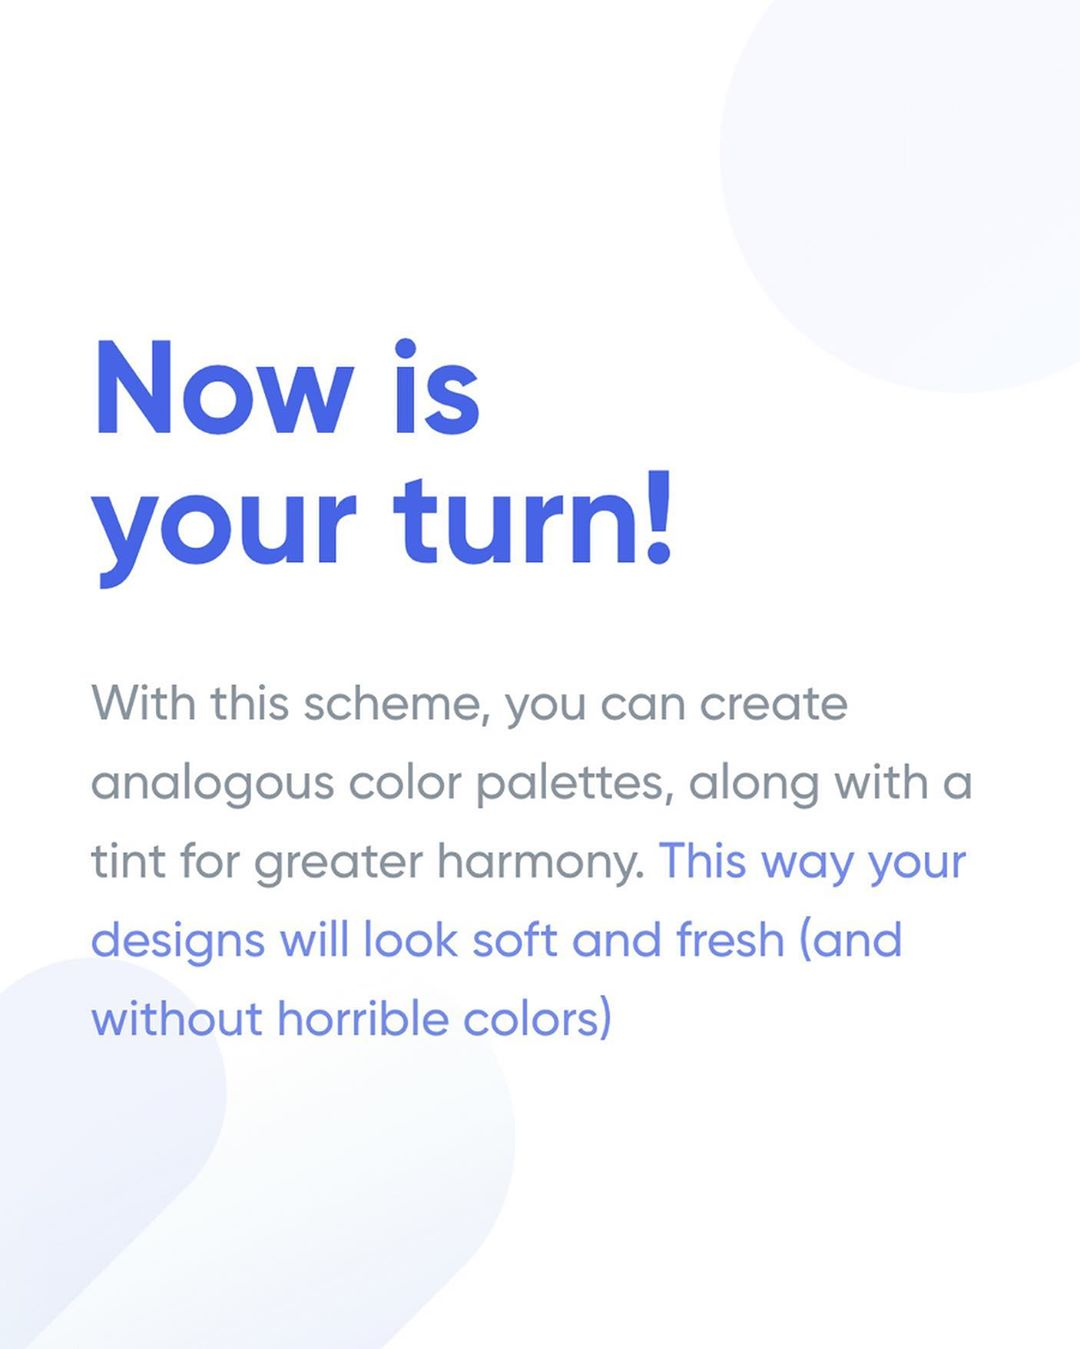 How To Apply Color To Your UI Design - Analogous Color Palettes